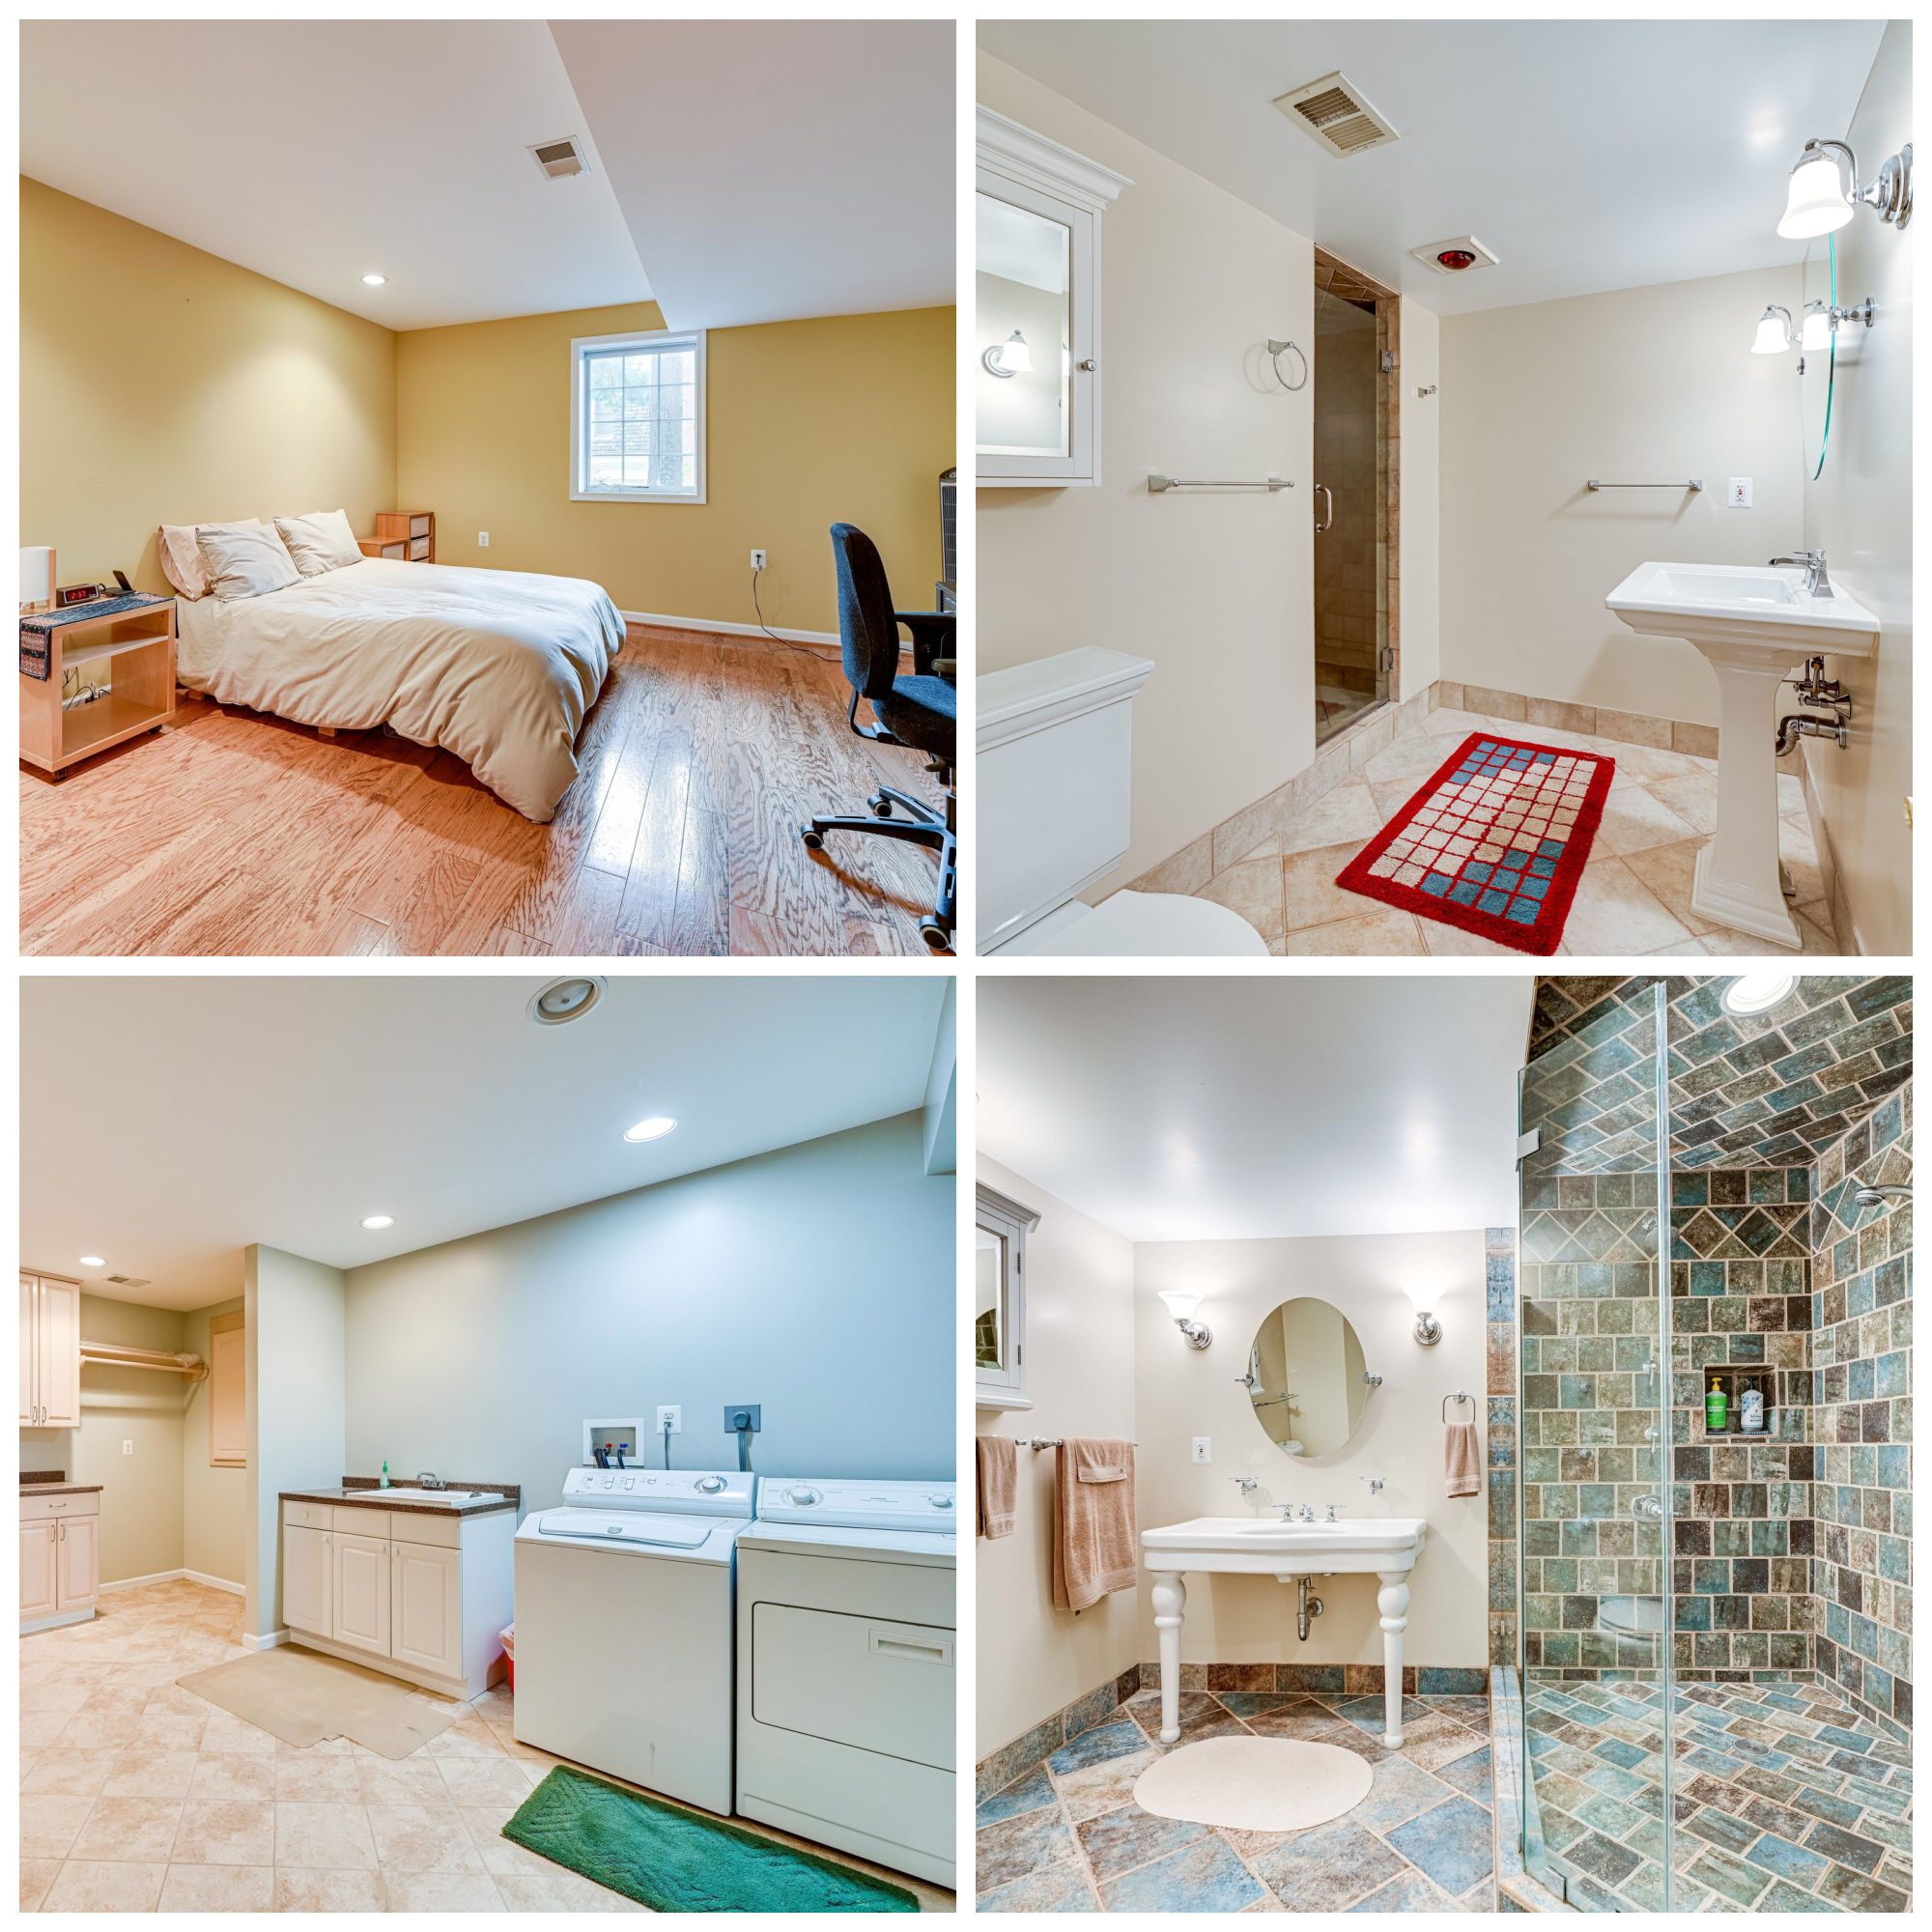 9220 Hidden Creek Dr, Great Falls- Lower Level Bedroom, Bathrooms, and Laundry